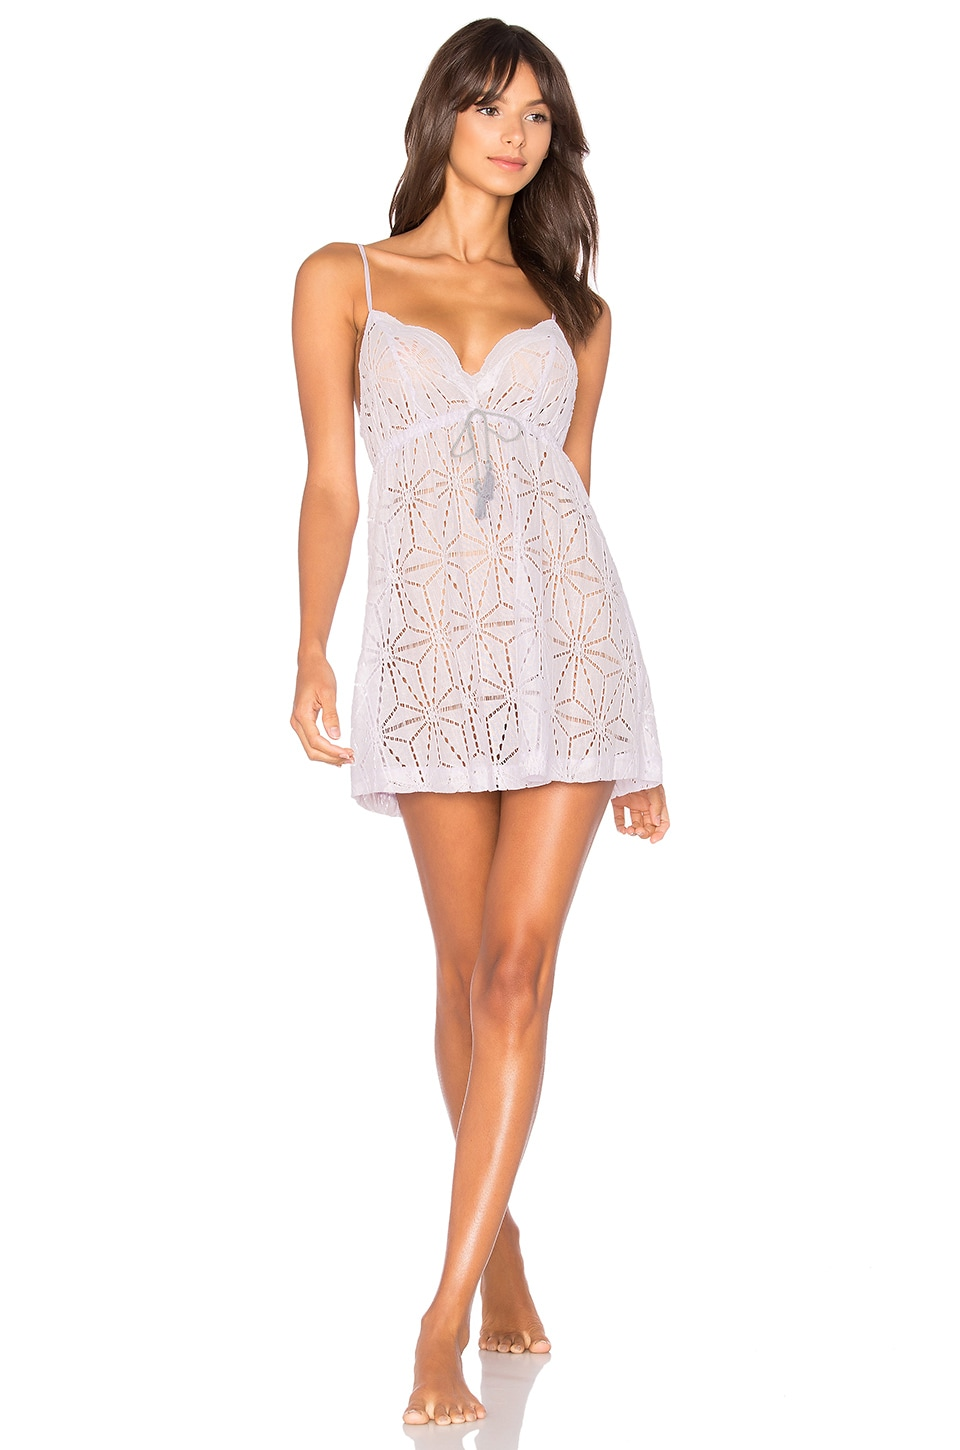 Izzy Chemise by Only Hearts